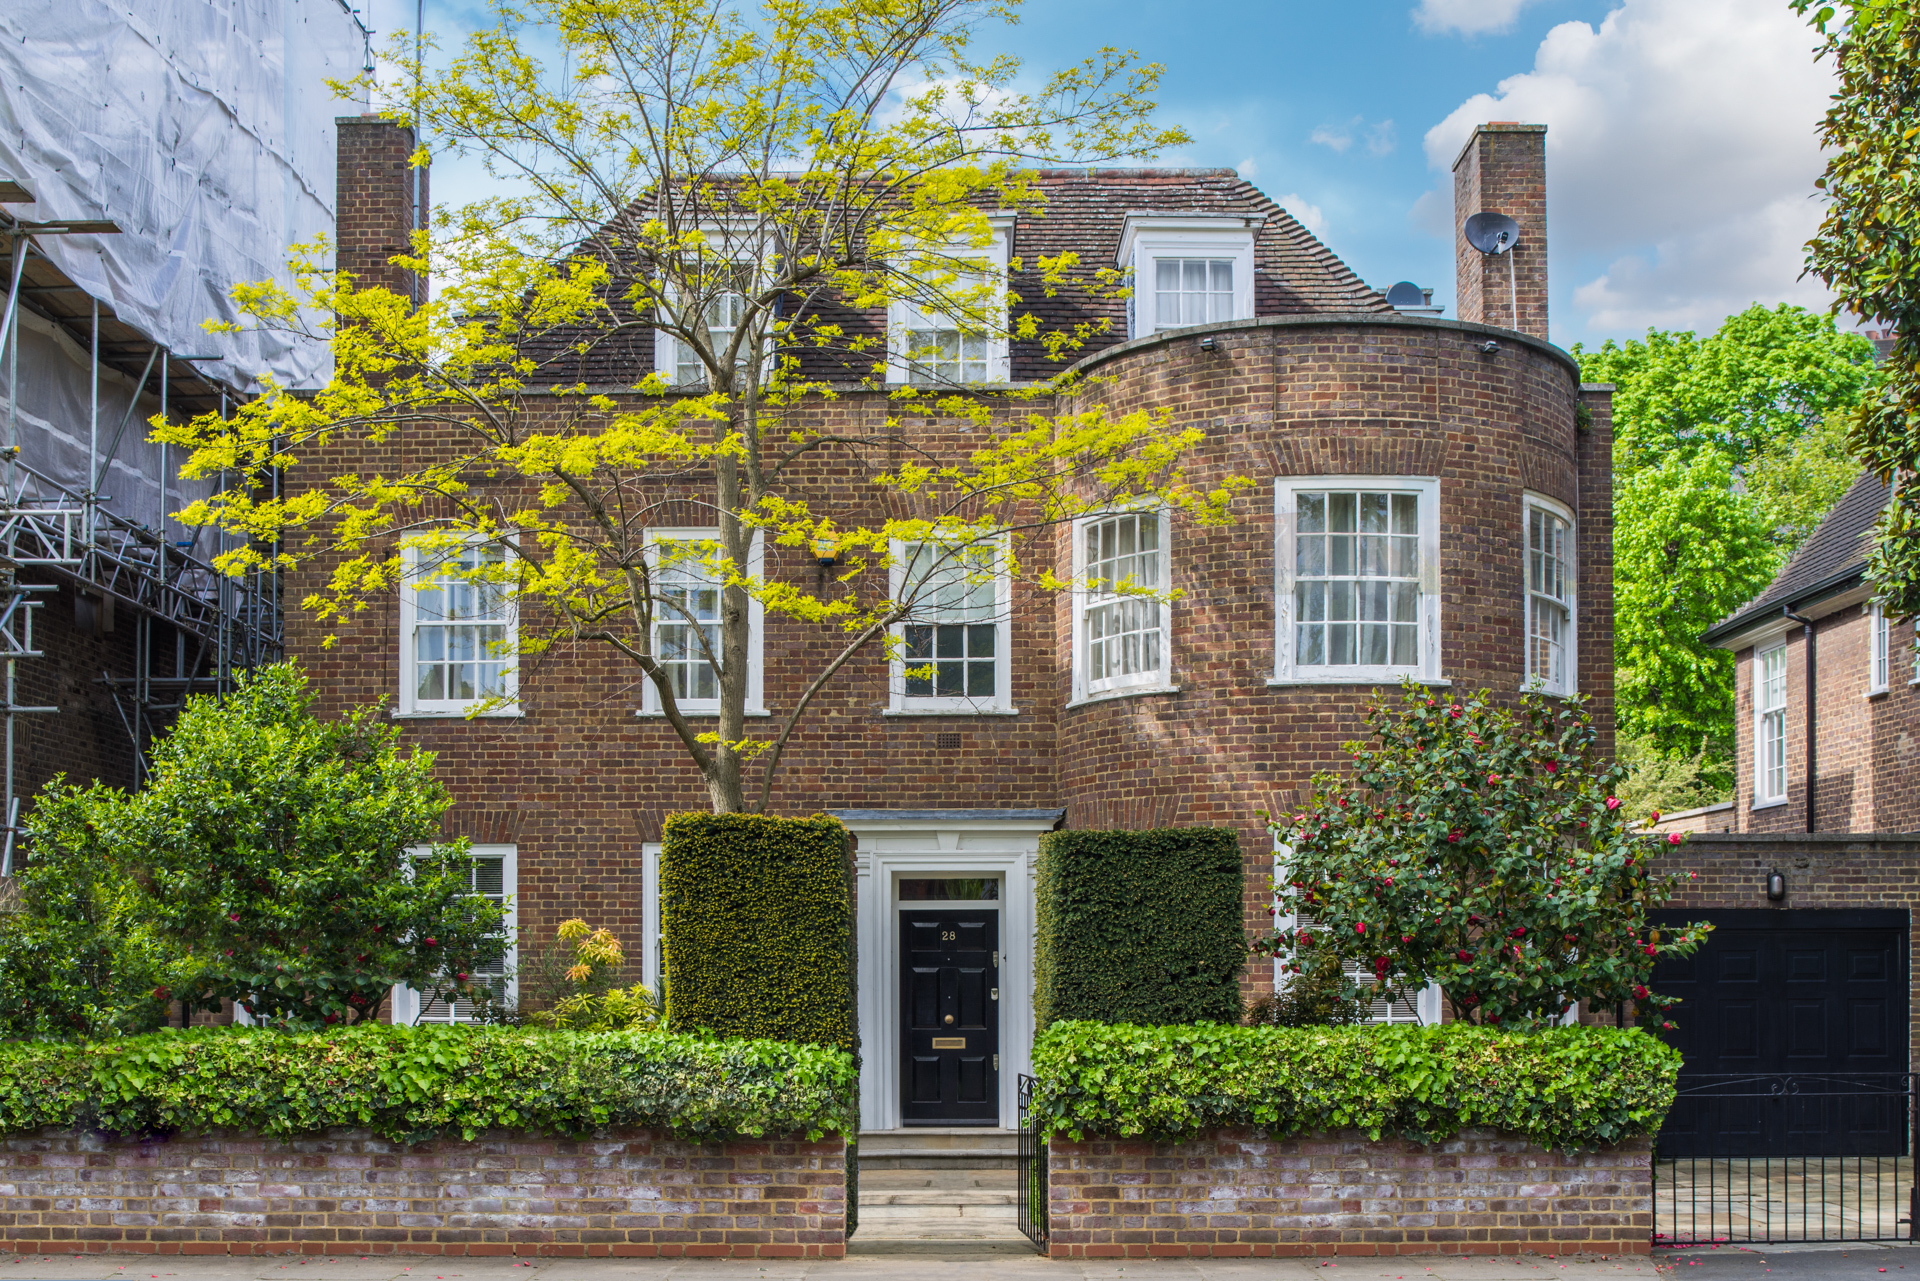 Springfield Road, St Johns Wood, NW8